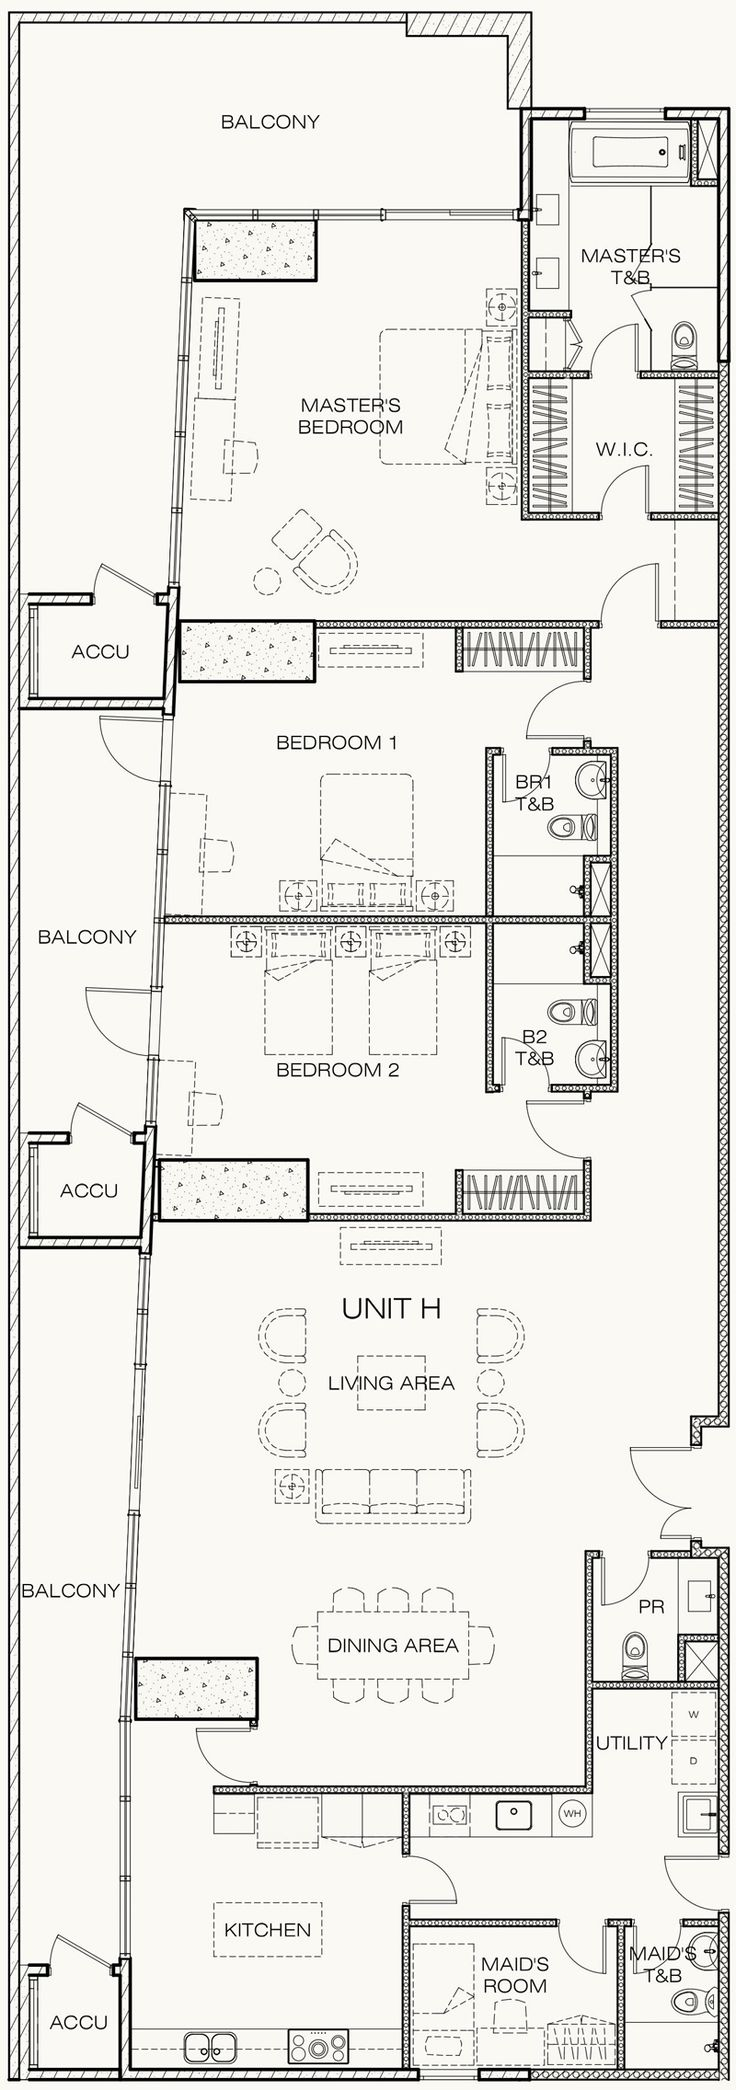 9 best west gallery place unit floor plans images on for 3 bedroom unit floor plans